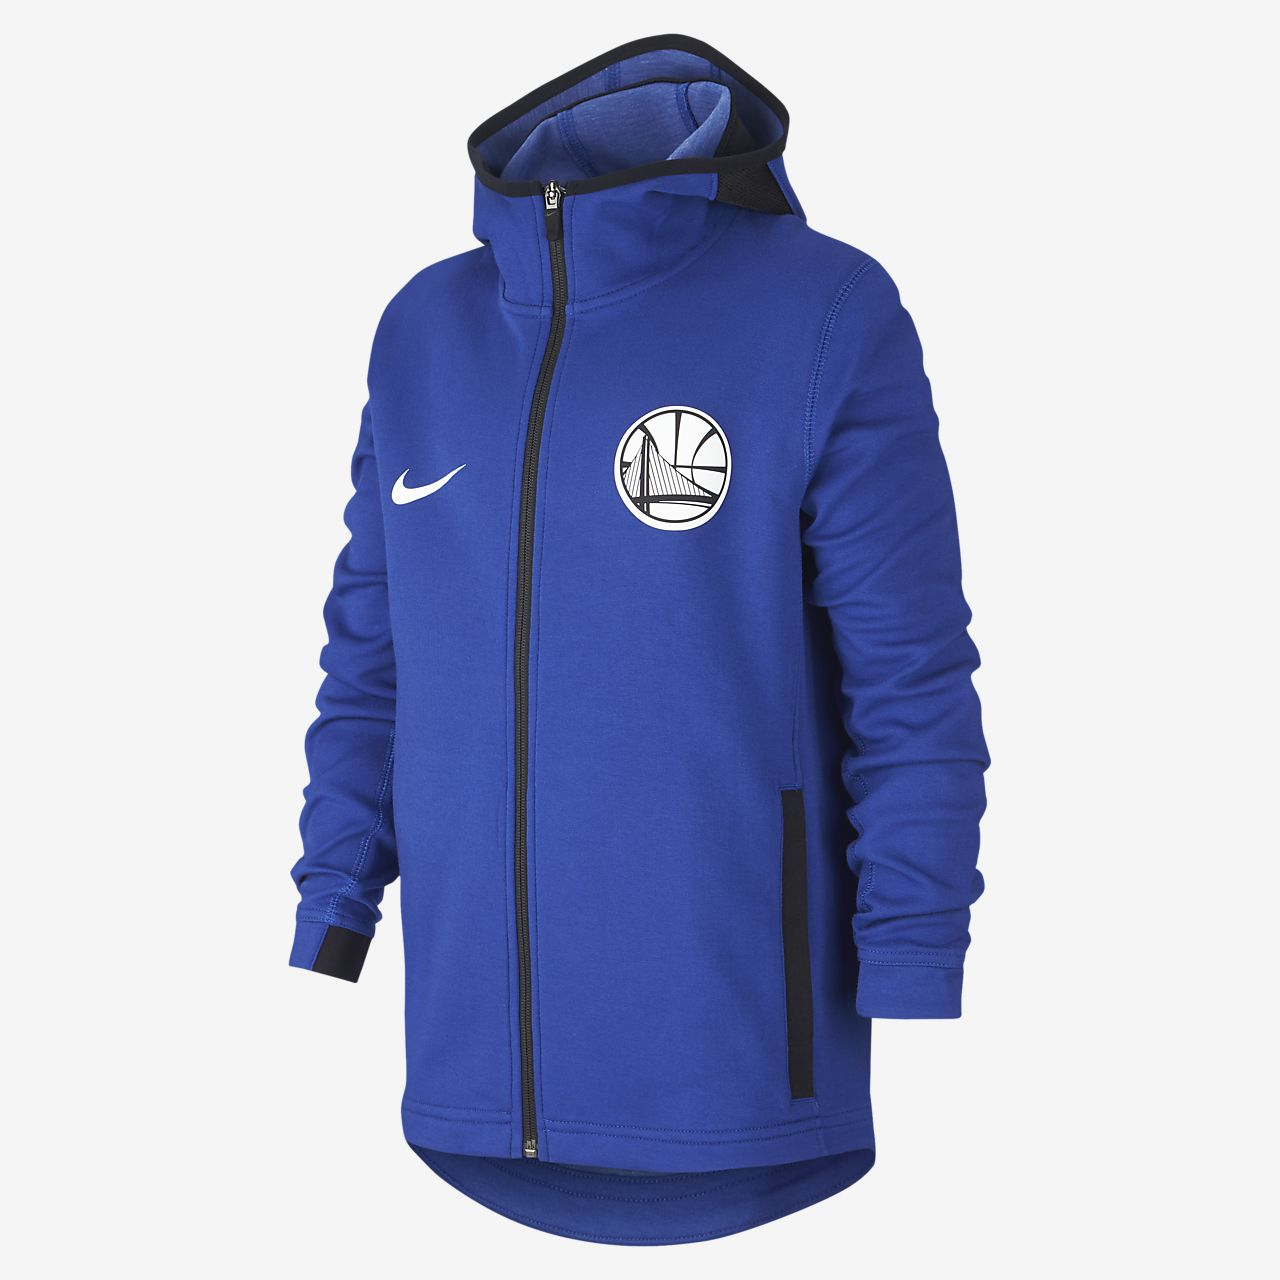 Felpa Golden State Warriors con cappuccio e zip a tutta lunghezza Nike Dri-FIT Showtime NBA - Ragazzo